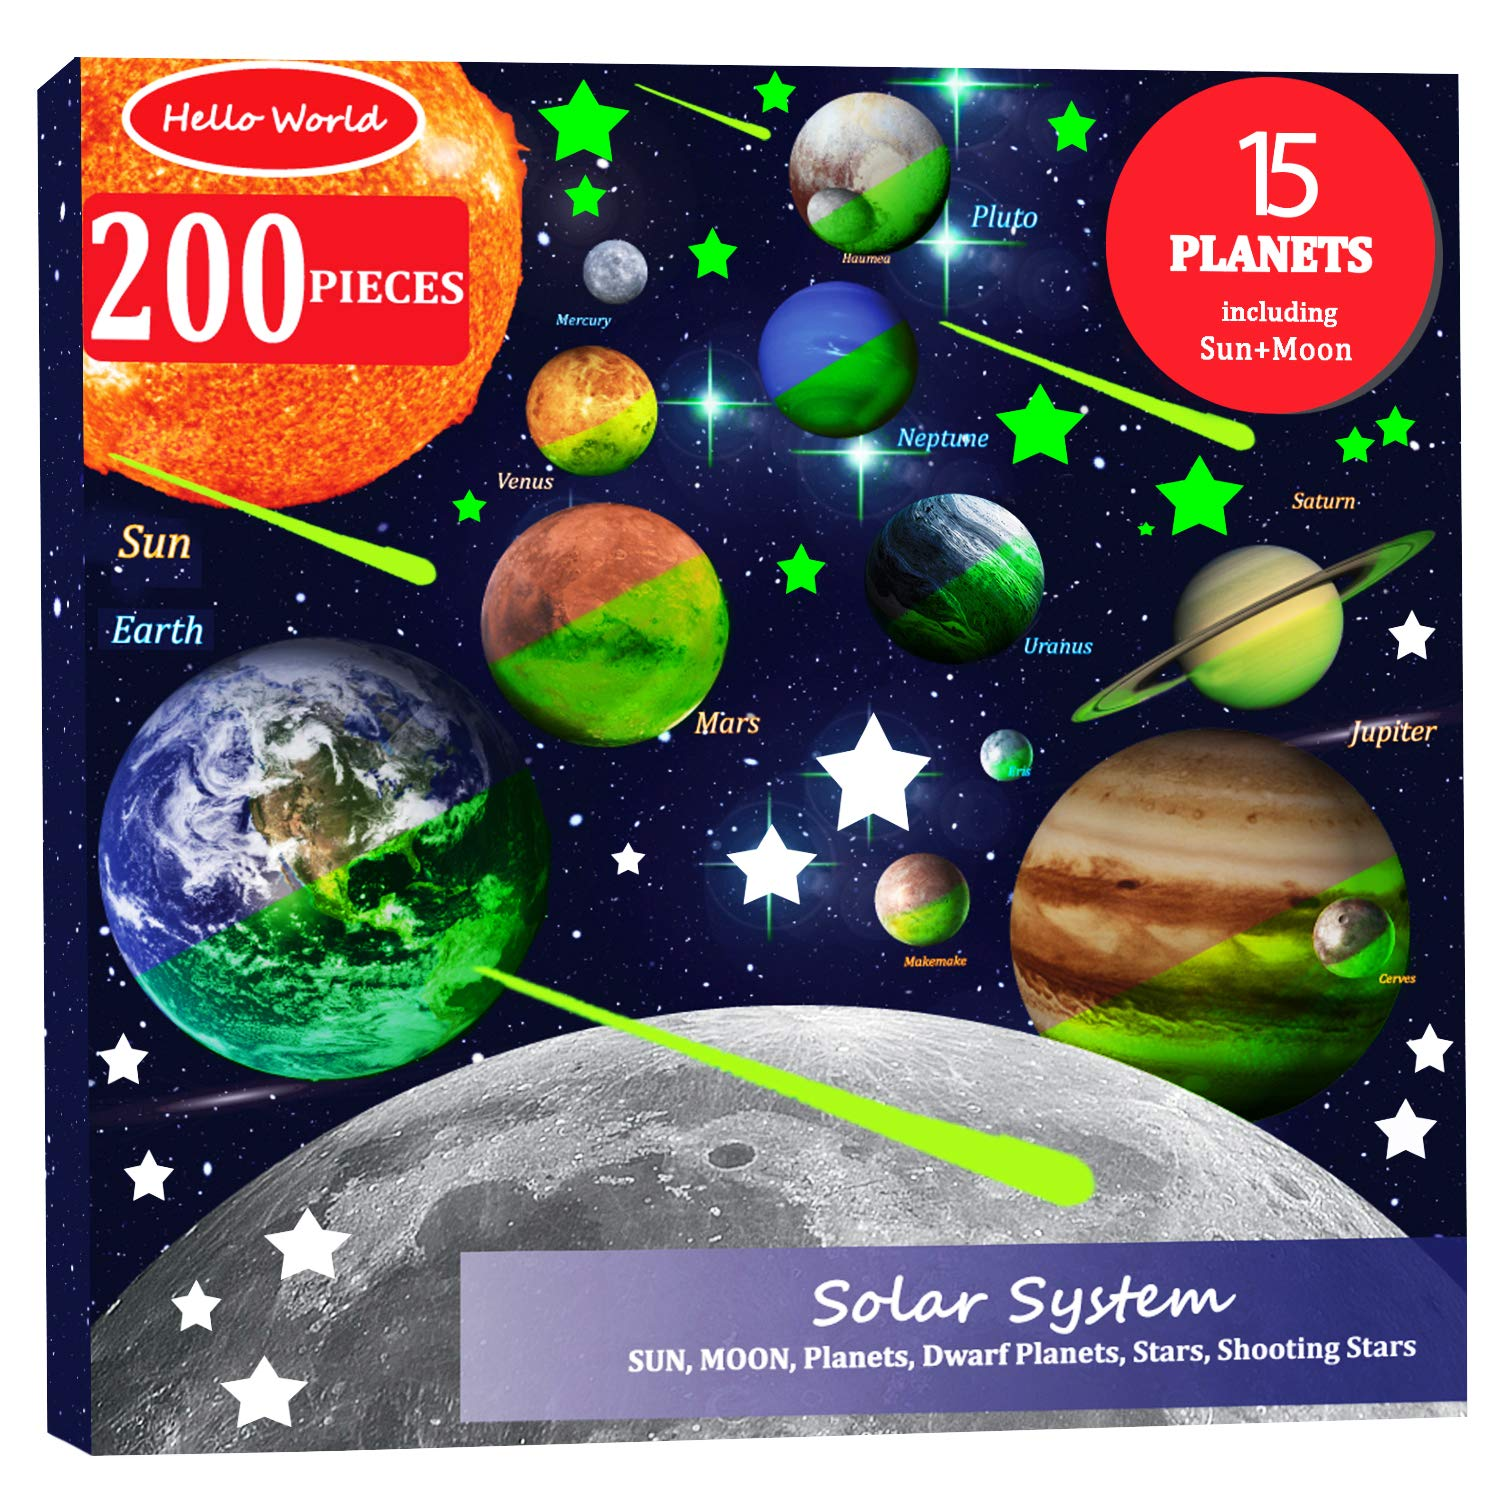 Hello World 200pcs Glow in The Dark Stars and Planets, Bright Solar System Wall Stickers, All Glowing 15 Planets Dwarf Pluto Moon Sun 173 Stars, 12 Shooting Stars, Ceiling Wall Decals Kids Bedroom by Hello World Universe